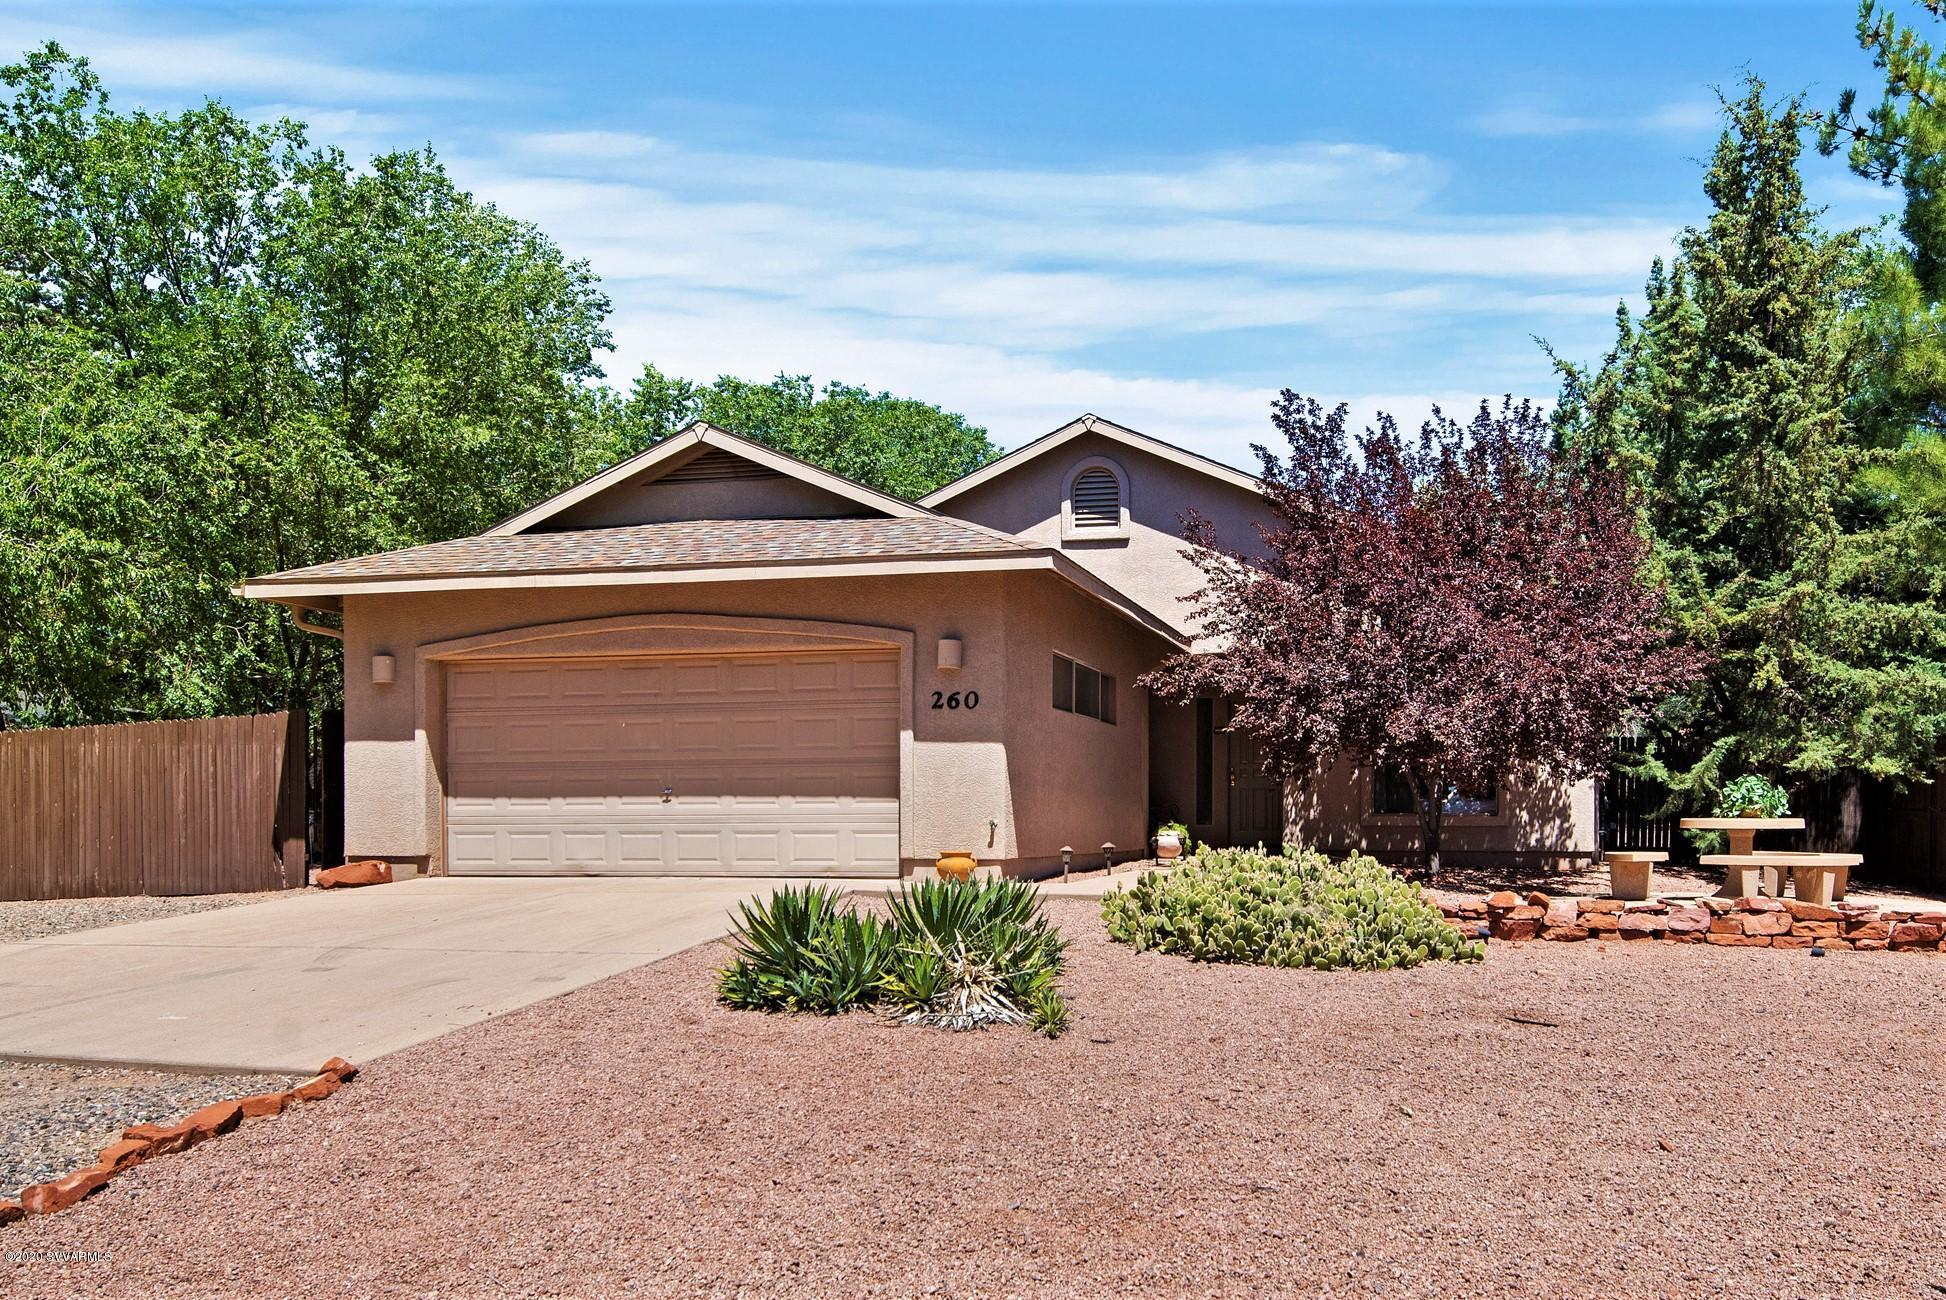 260 Oak Creek Blvd Sedona, AZ 86336